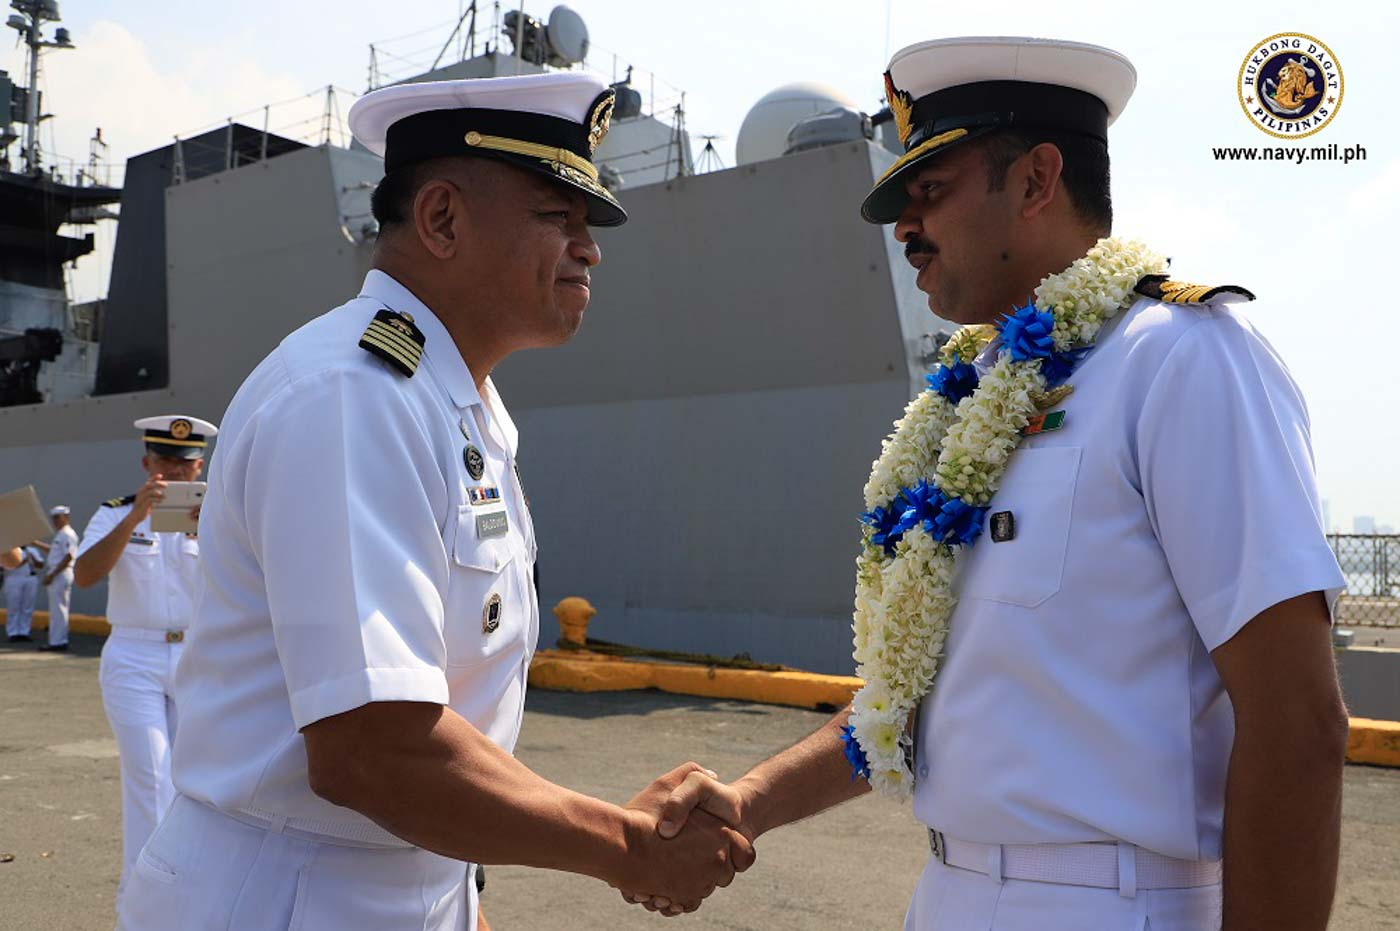 STRATEGIC TIES. Indian Navy Captain Ashwin Arvind shakes hands with Philippine Navy Captain Ernesto Baldovino. Arvind says ties between the two navies are strategic and important as neighbors in the Indo-Pacific region. Photo from the Philippine Navy